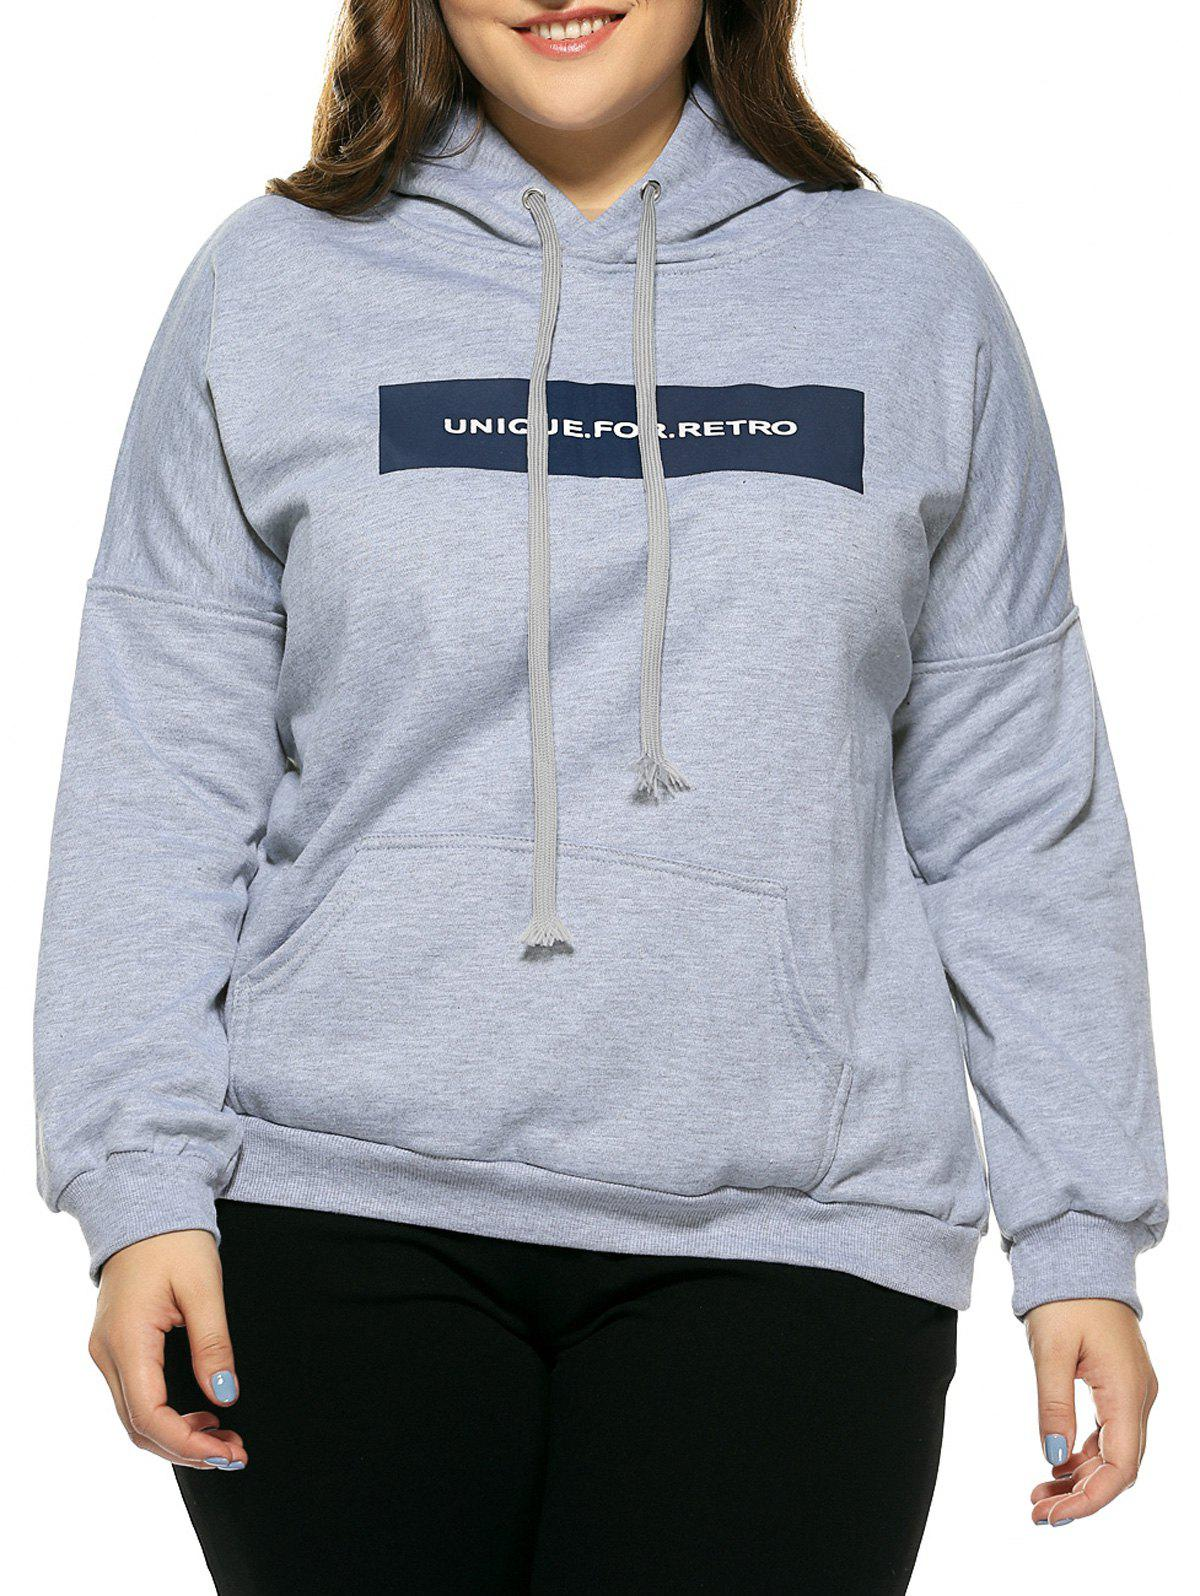 Plus Size Hooded Long Sleeve Letter Hoodie - GRAY XL